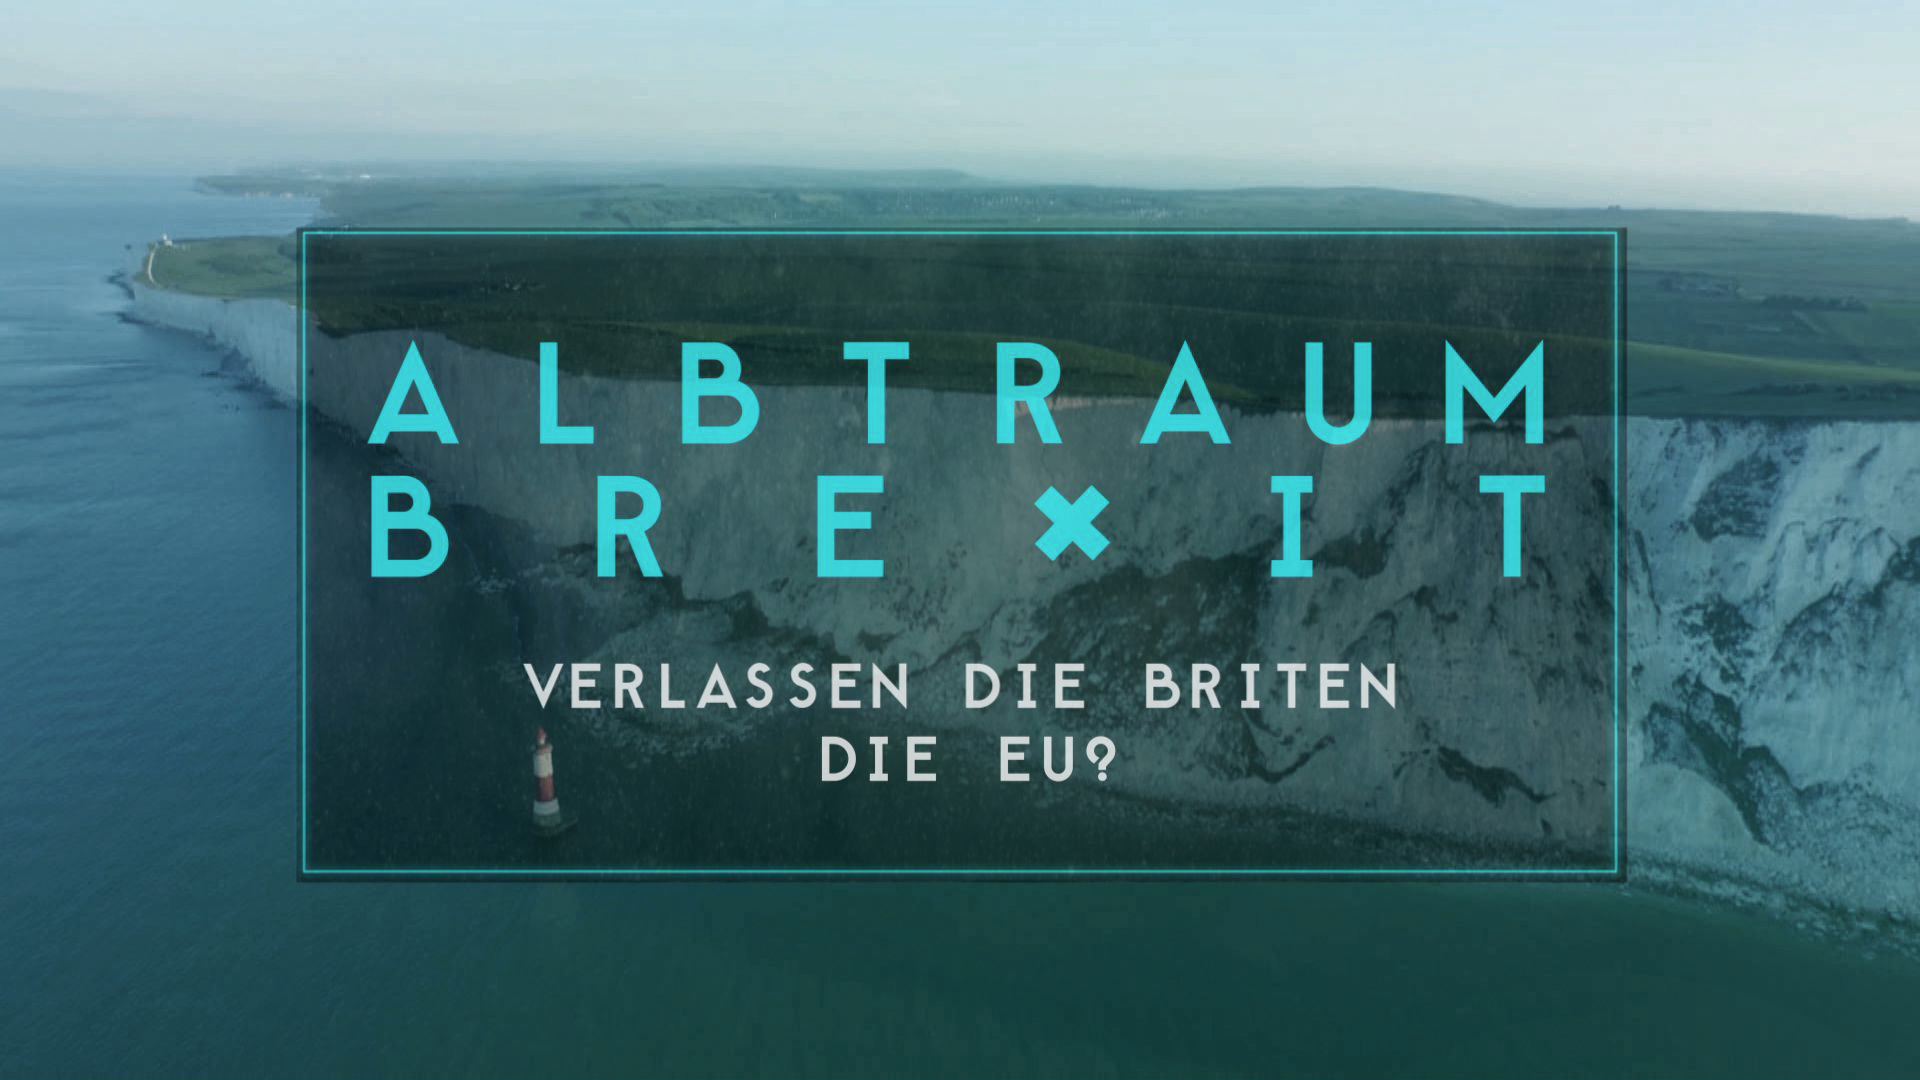 Albtraum Brexit: On Air Graphics